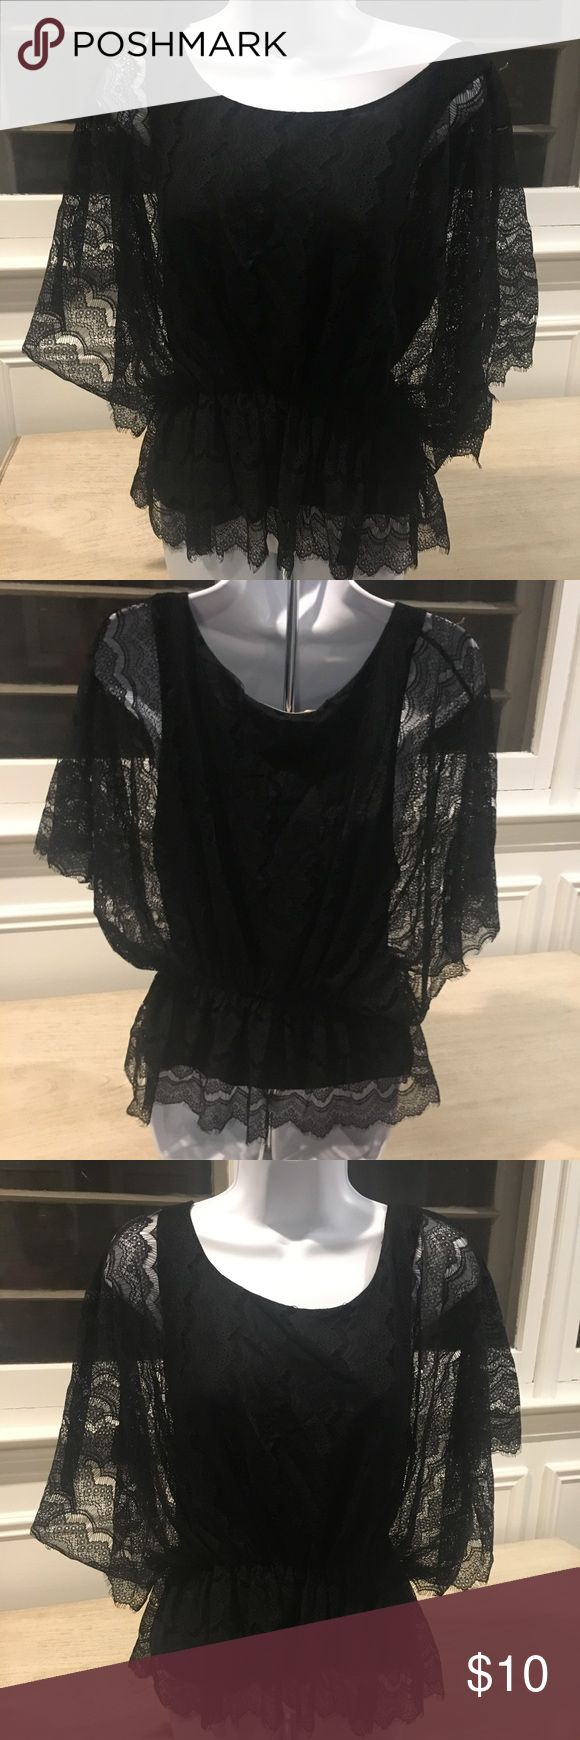 Old Navy Black Lace Top OLD NAVY BATWING DOLMAN CINCHED WAIST LINED BLACK FLORAL LACE BLOUSE TOP. SUPER CUTE WITH JEANS. Old Navy Tops Tunics